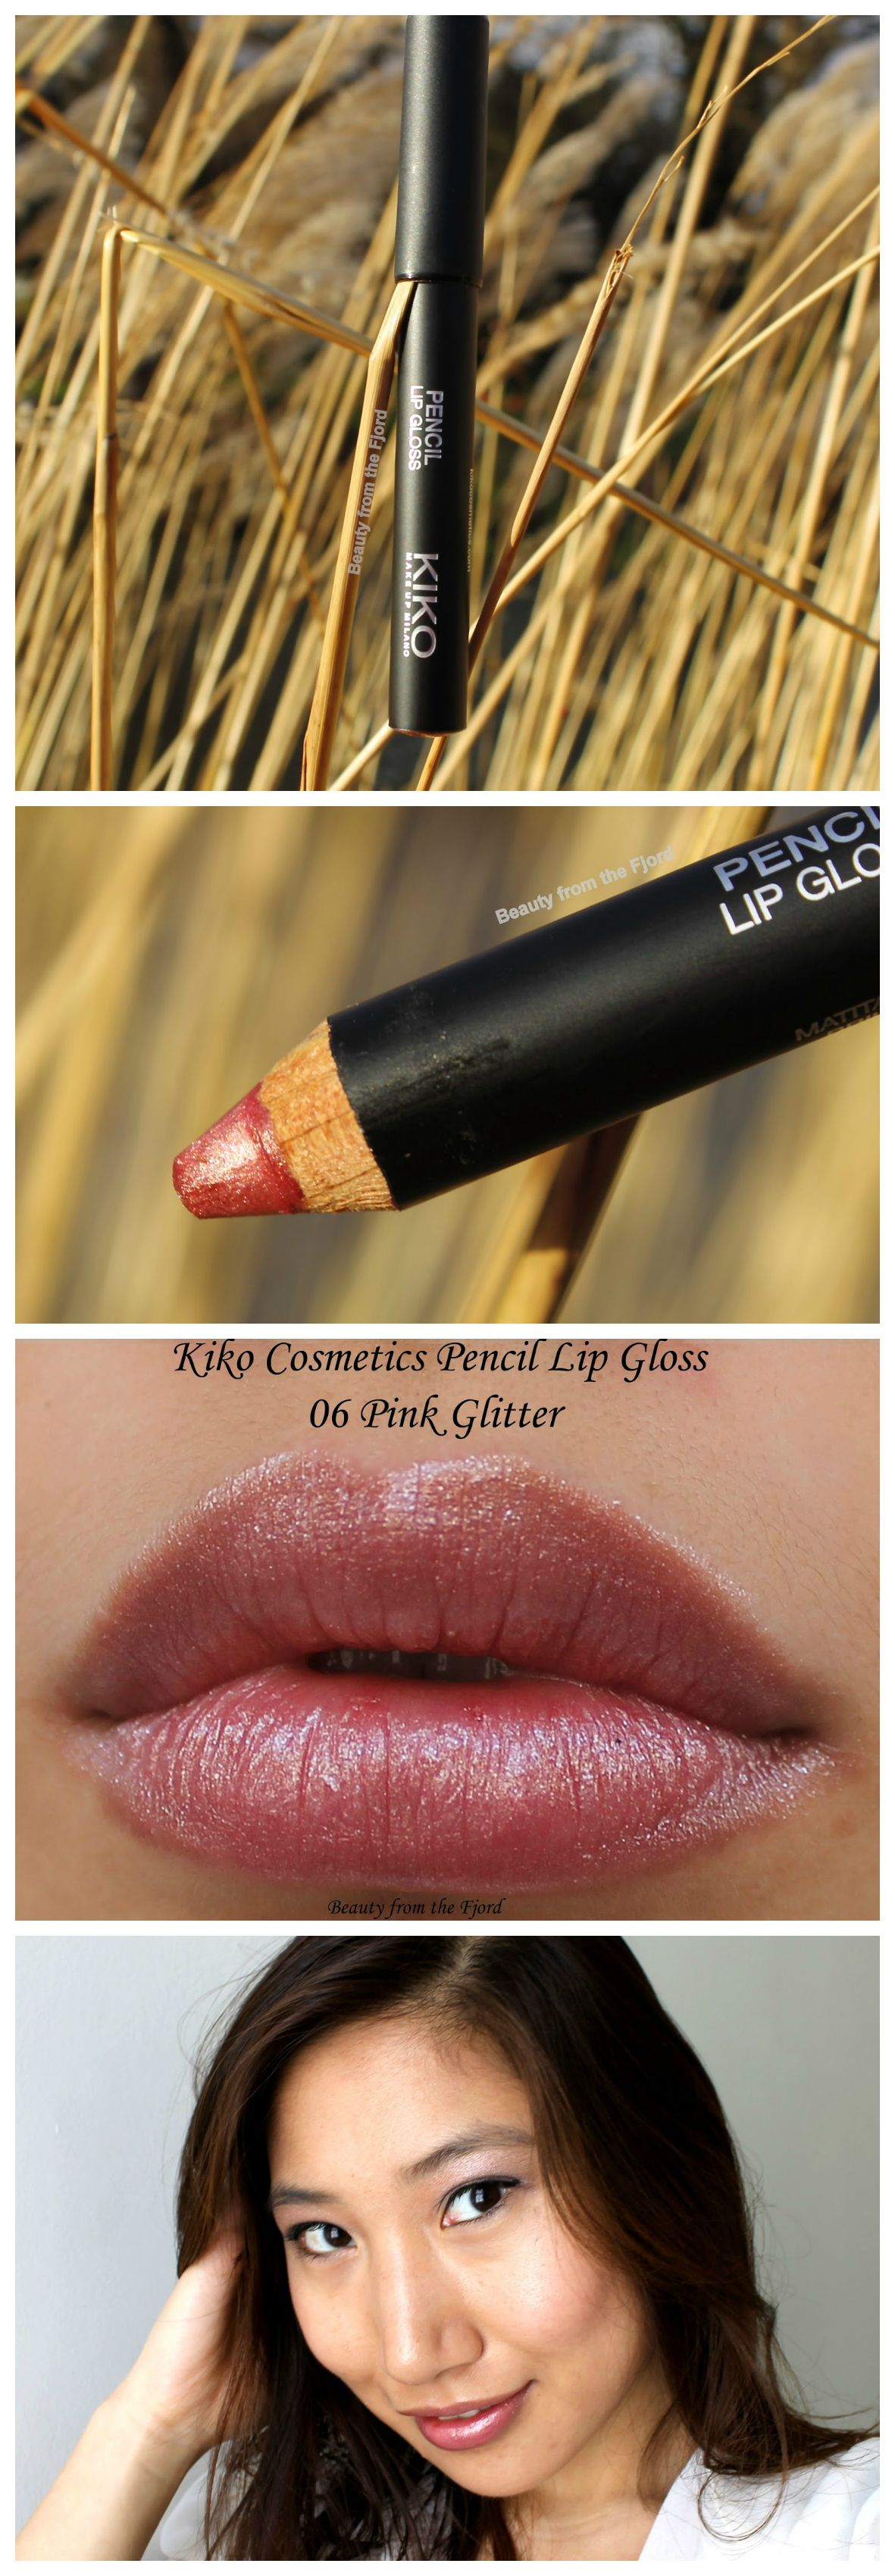 Kiko Pencil Lip Gloss in Pink Glitter Review and Swatches